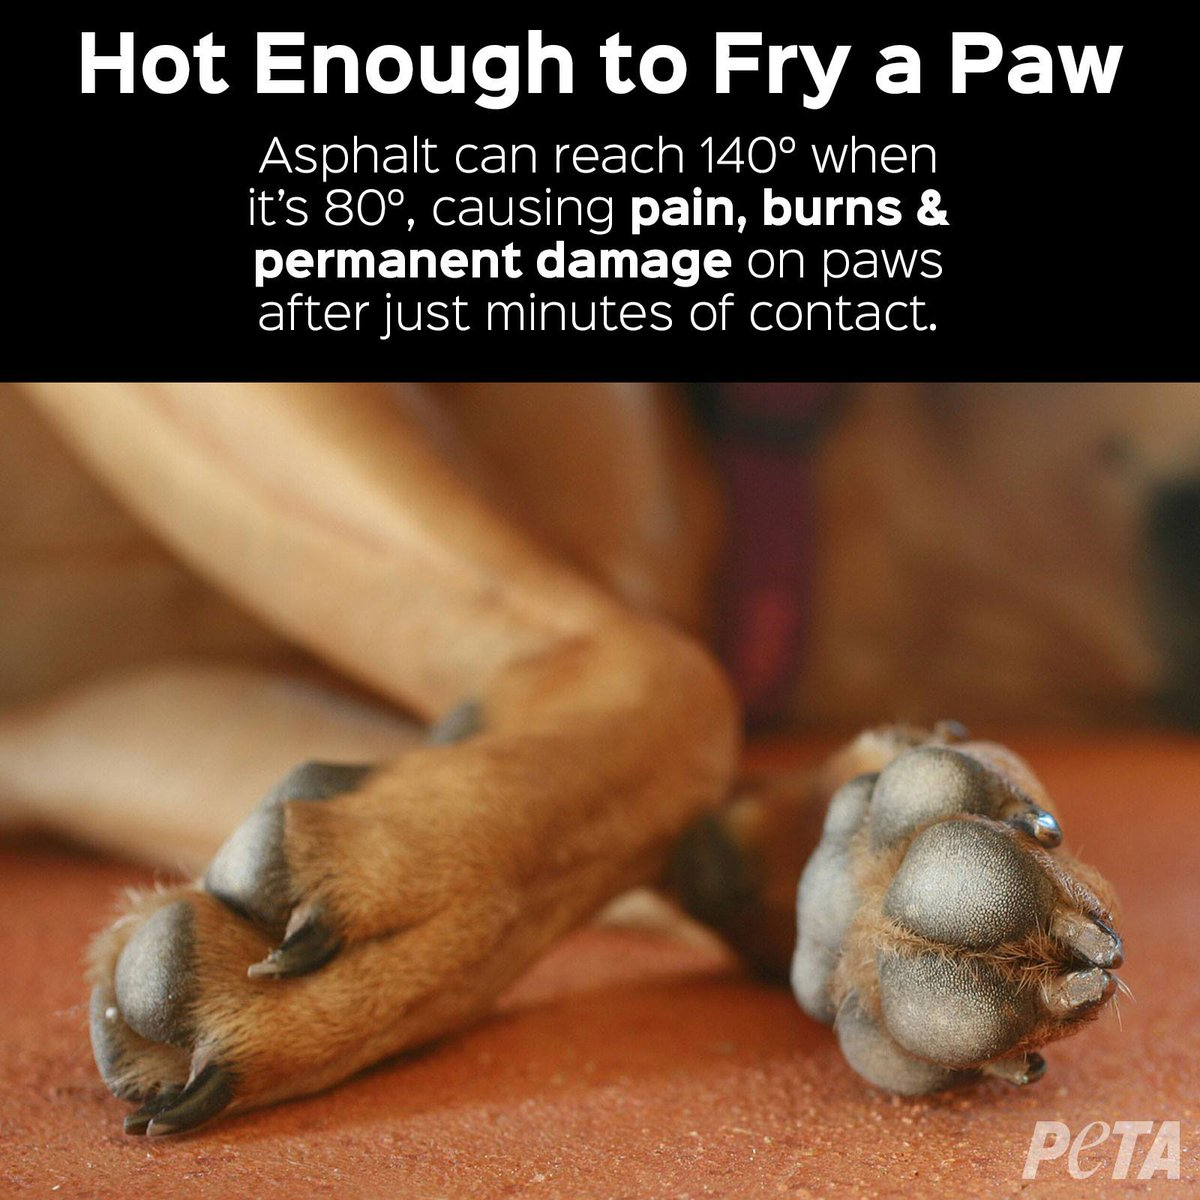 #WhenItsTooHot think of your dog's paws 🐾 https://t.co/dqQbUEWzS7